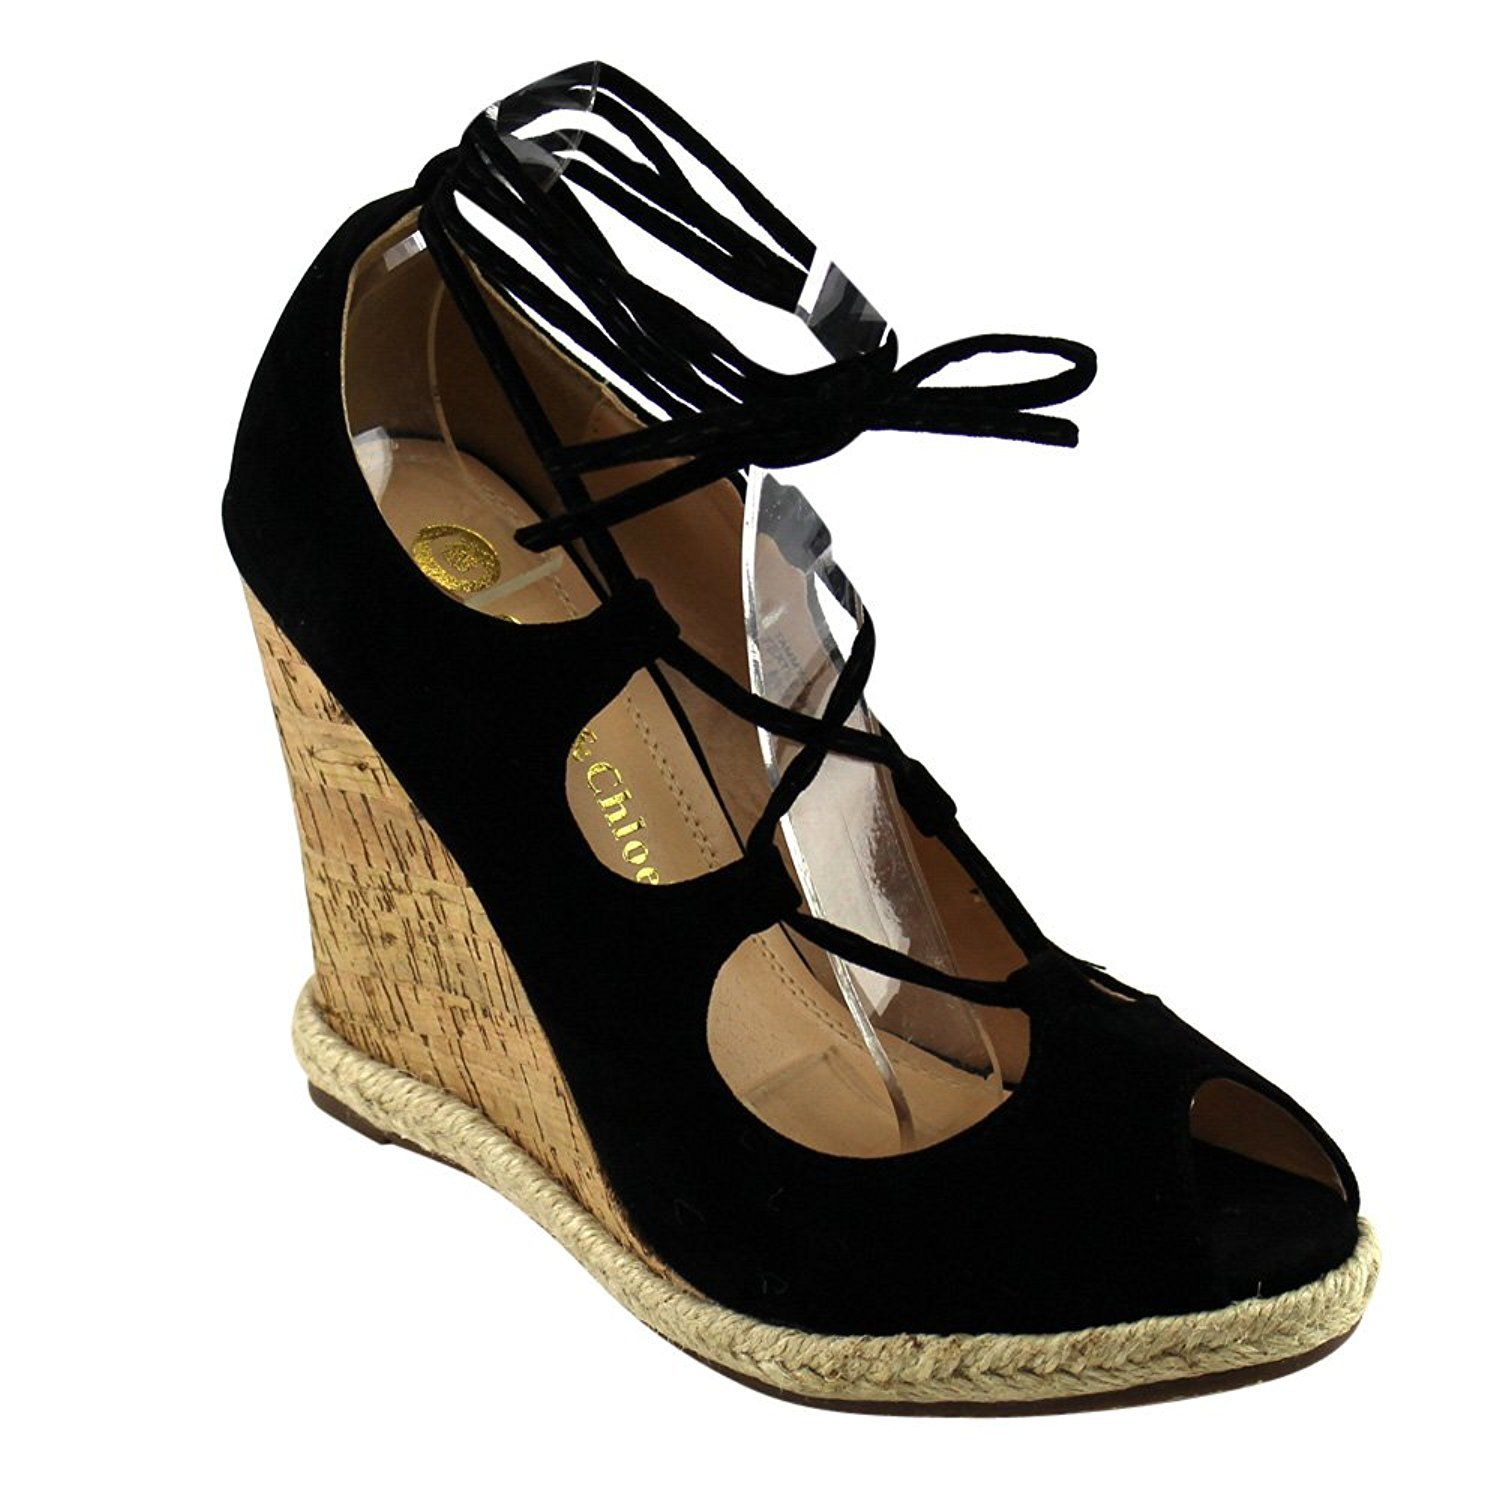 8aaf5a99196 Chase and Chloe CE40 Women's Peep Toe Espadrilles Lace Up Wedge Calf ...